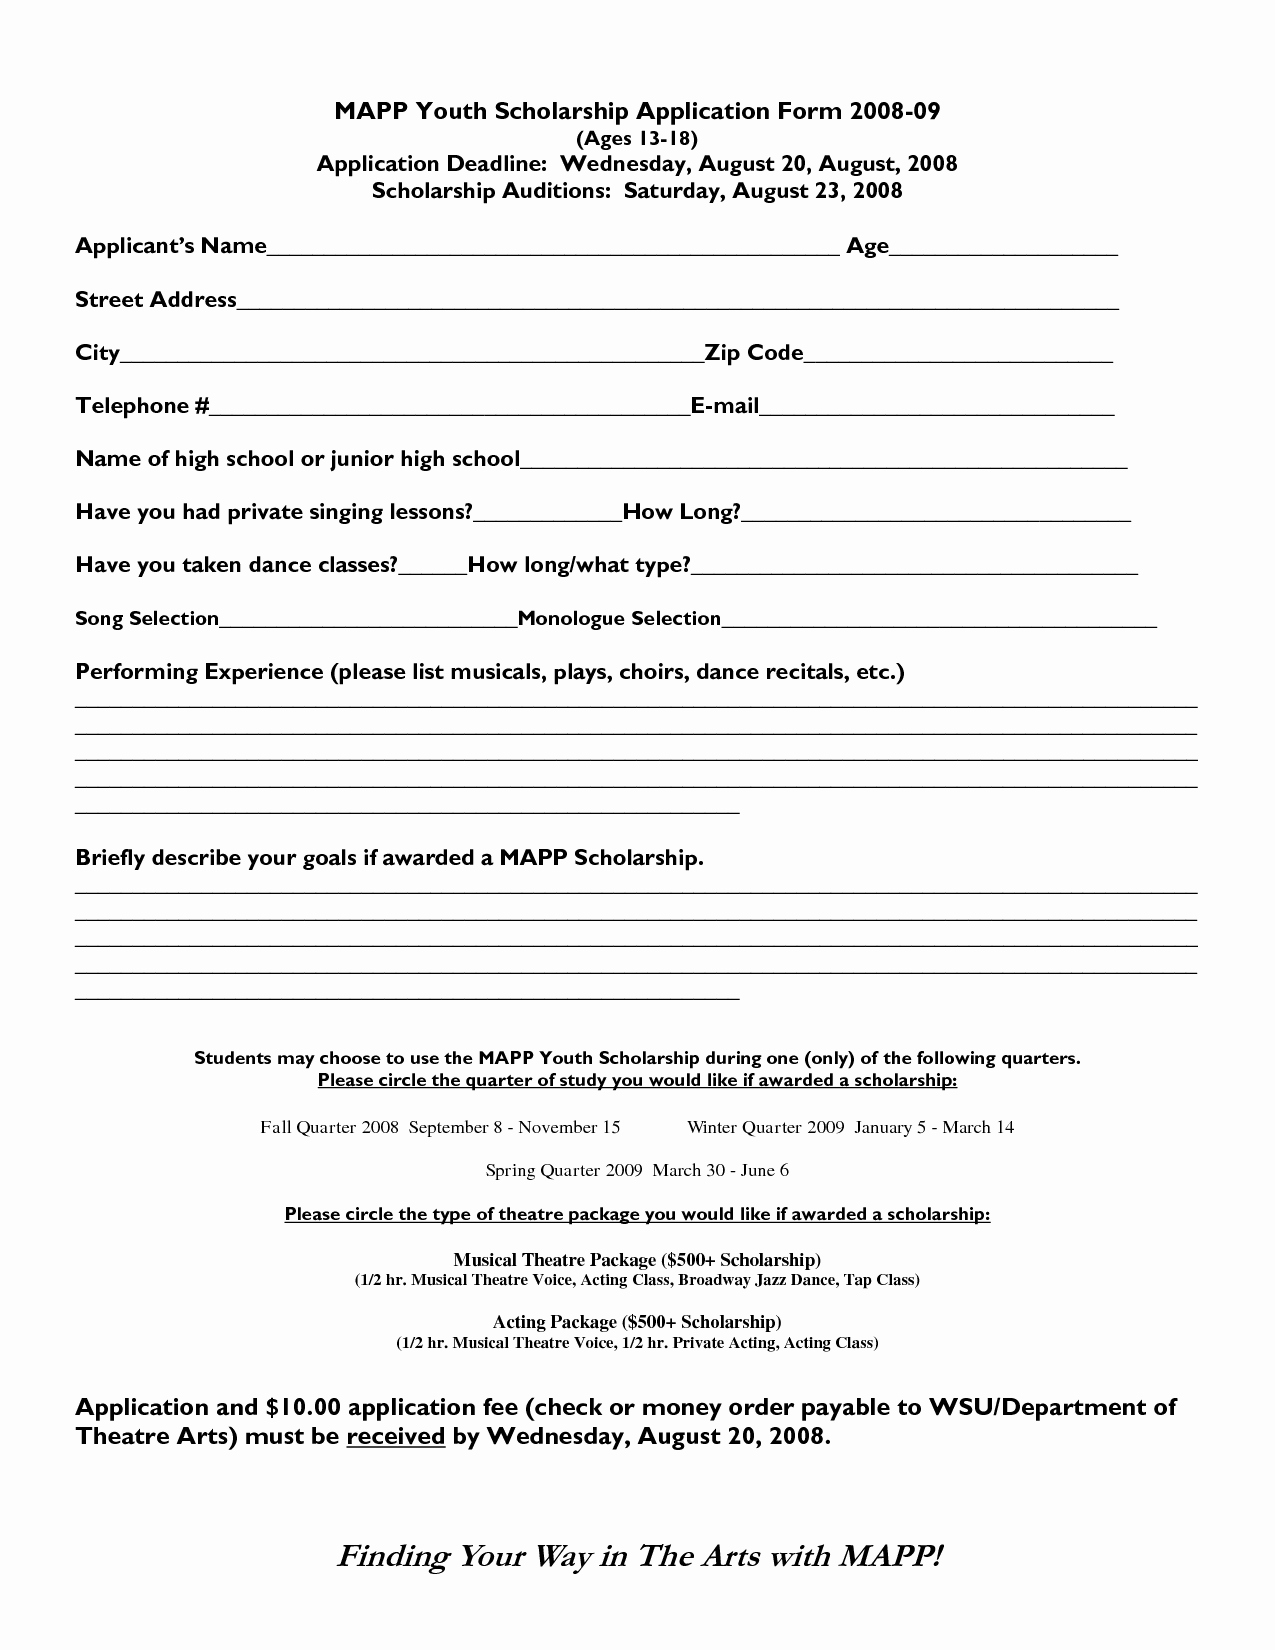 Blank Scholarship Application Template New Sample Scholarship Application form